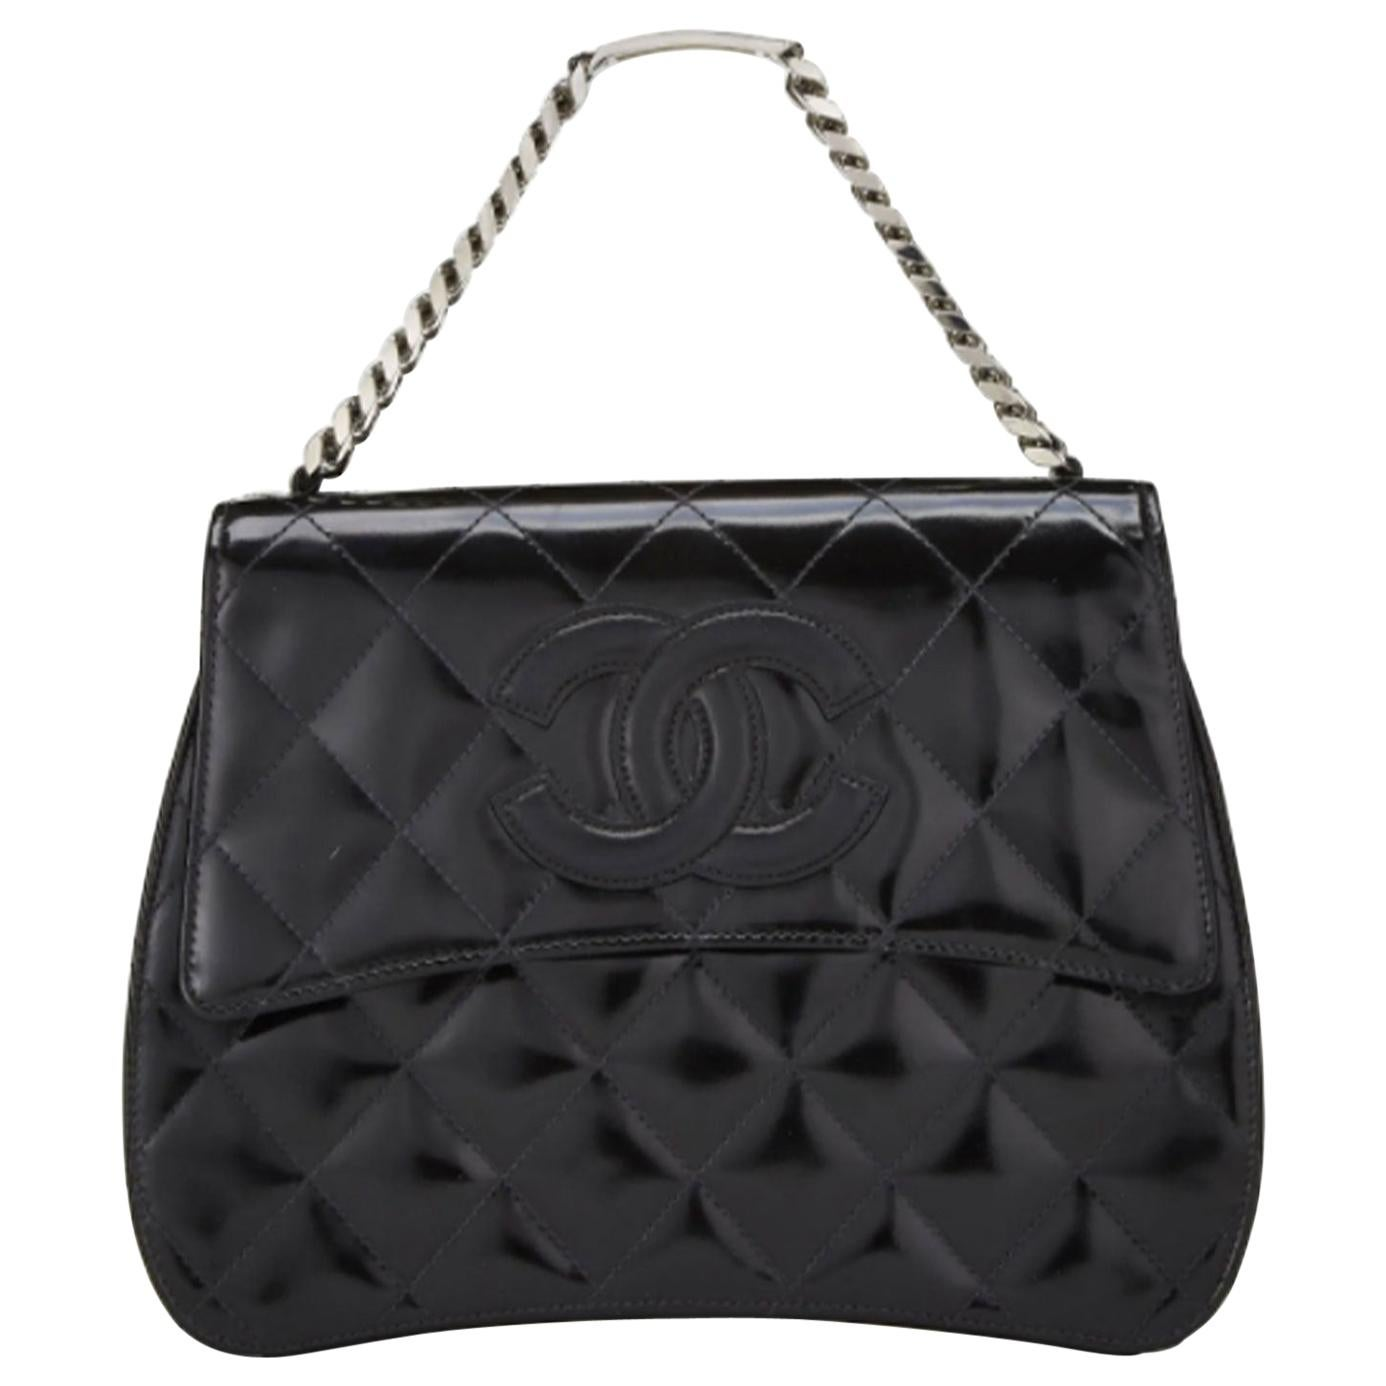 Chanel Vintage 1997 Name Plate Black Patent Leather Top Handle Bag